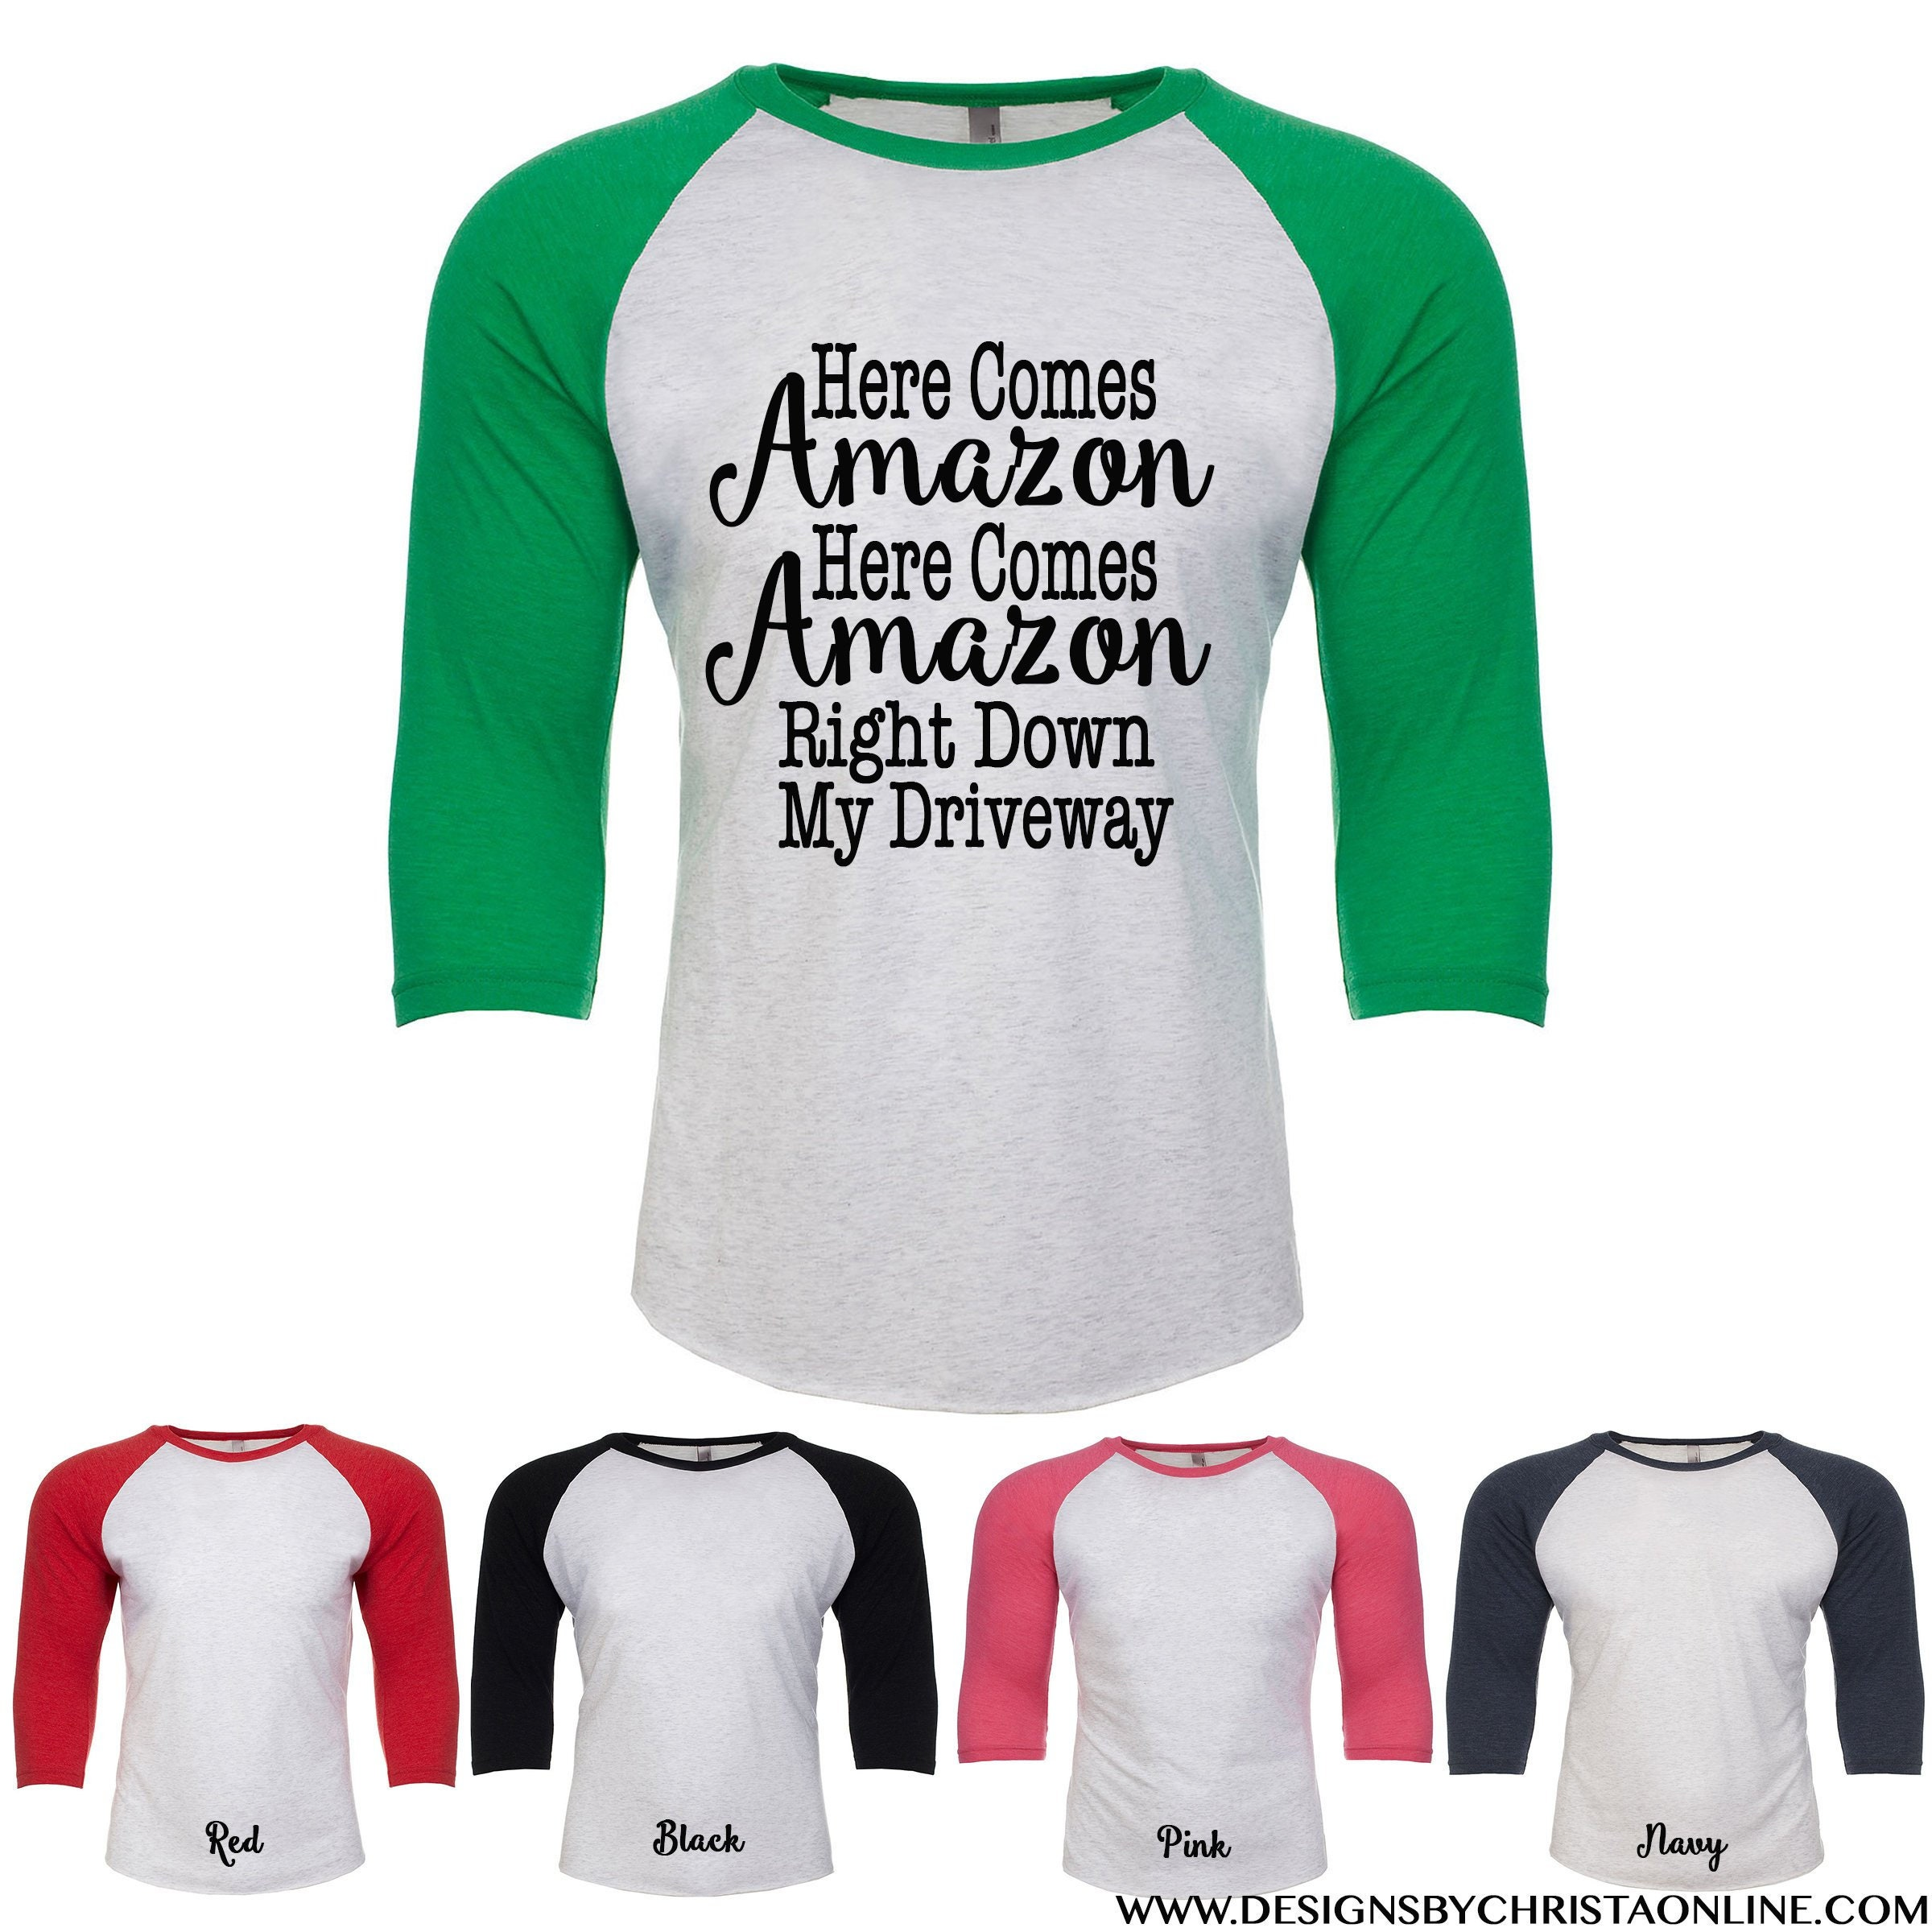 0475514f Christmas Long Sleeve T Shirts Amazon - Aztec Stone and Reclamations